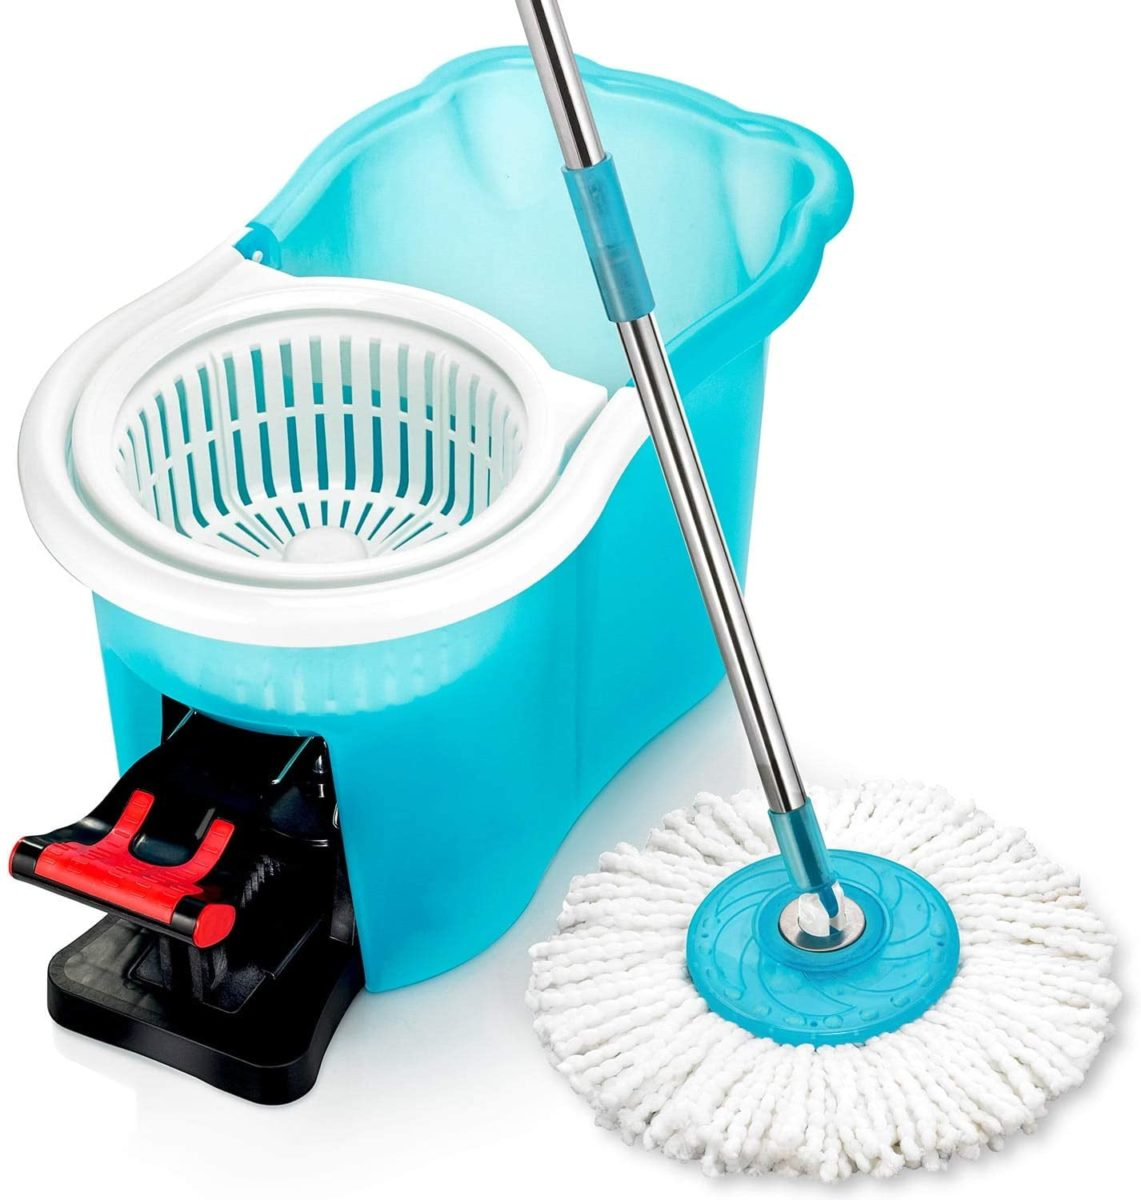 26 of the best products for deeping cleaning your home as you head into the new year | what does a fresh start mean? well, it could mean whatever you want it to mean.